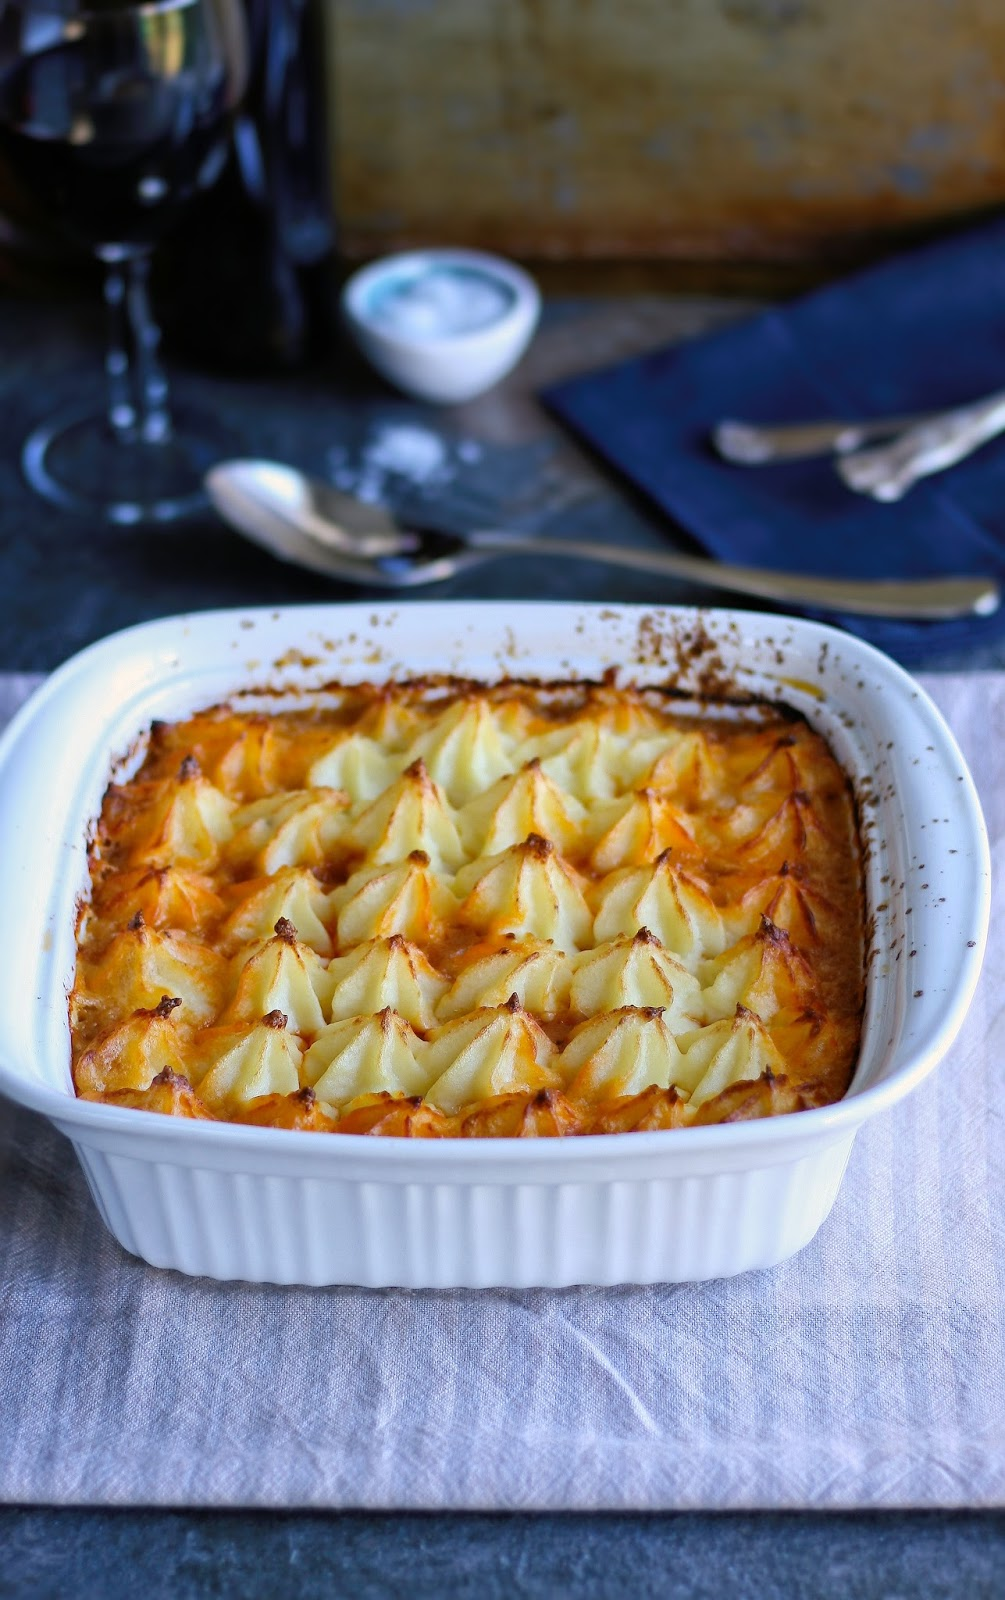 Winter shepherd's pie recipe.